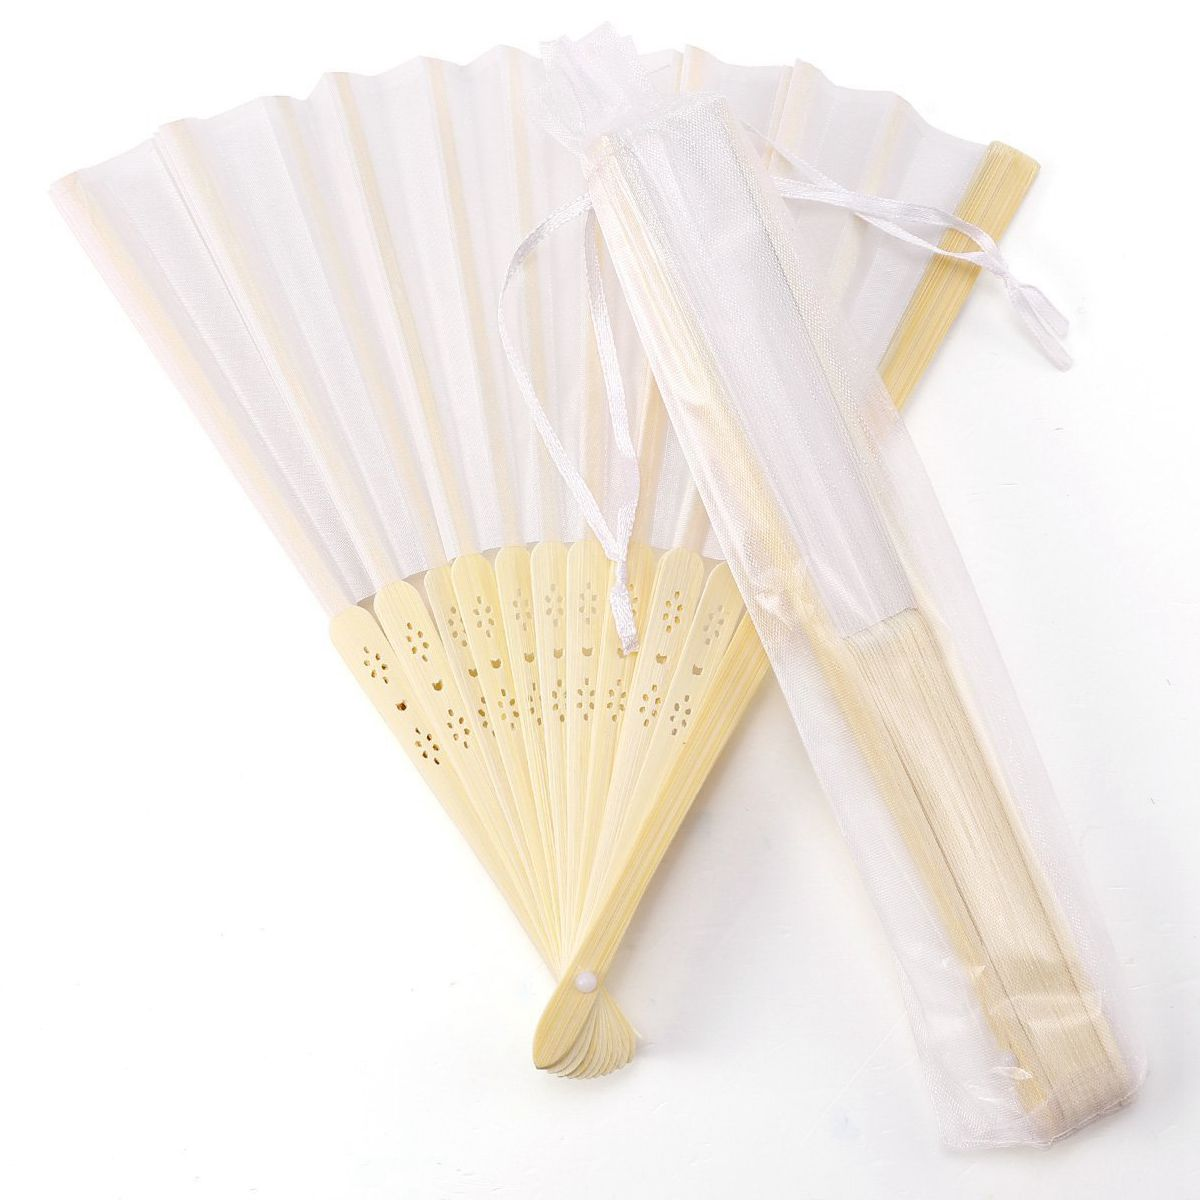 10x Fan In White Silk Fabric + Bamboo With Gift Bag In Muslin For Wedding Personalized Dancing Writing Painting